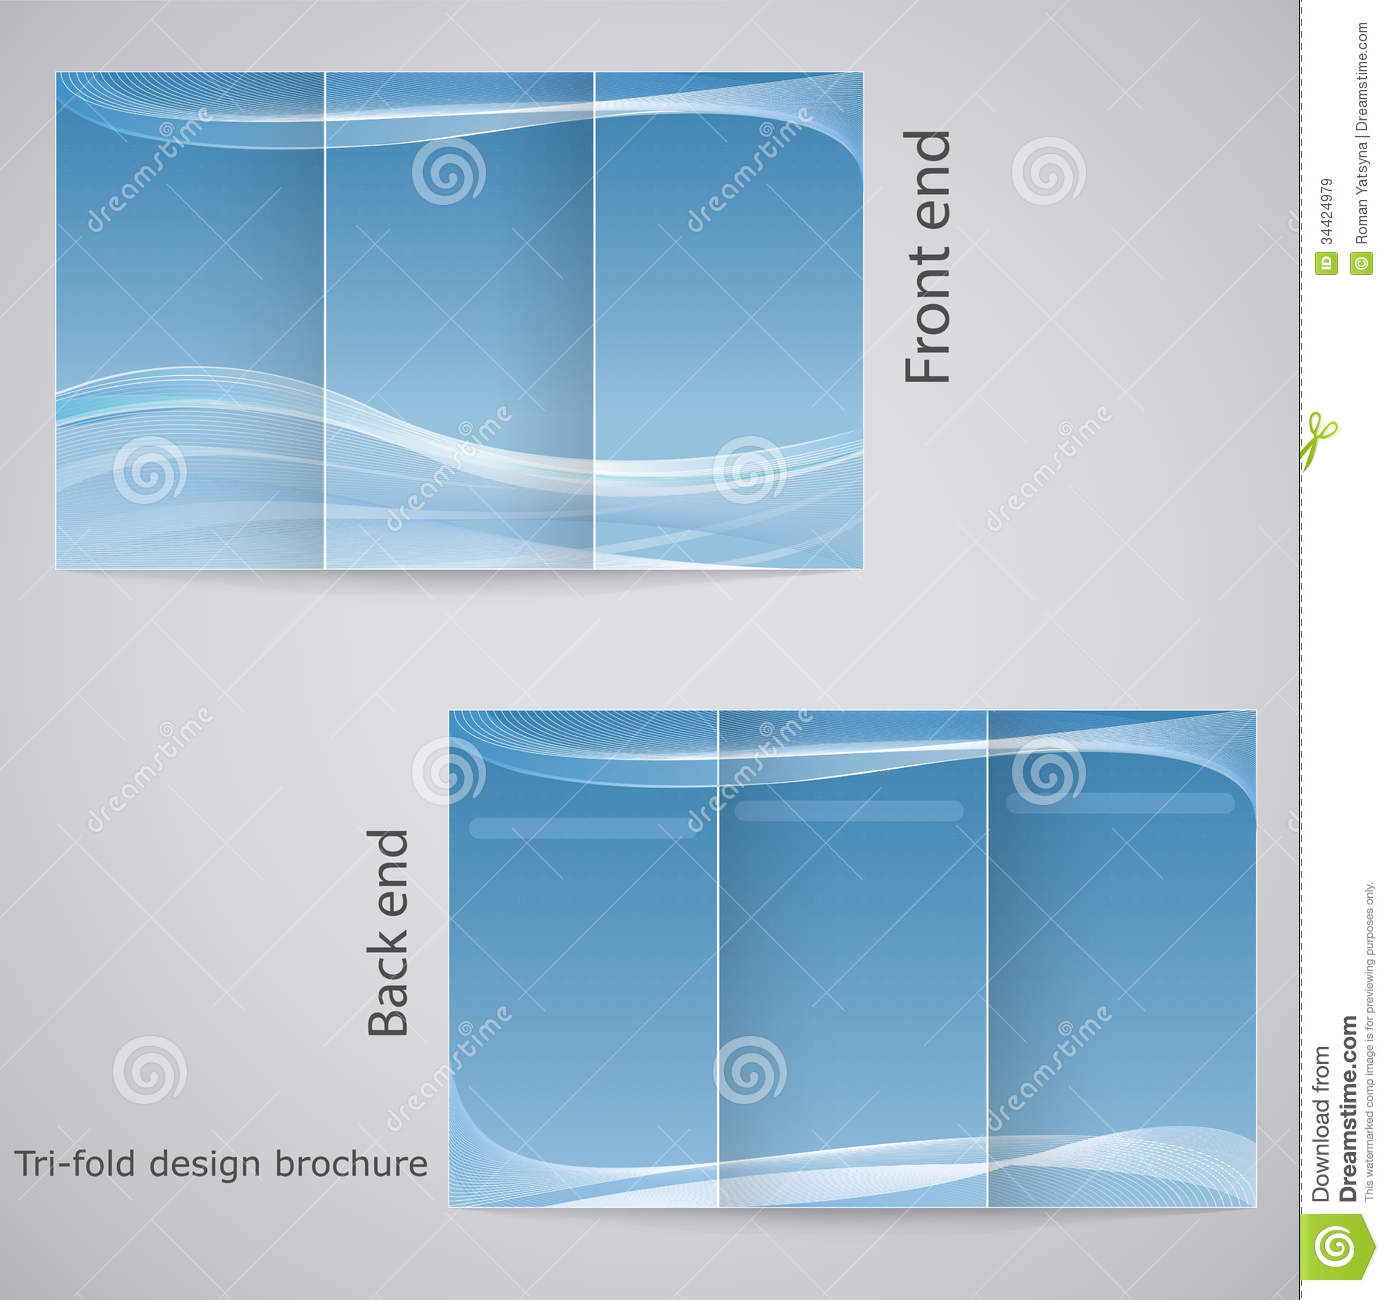 17 tri fold brochure design templates images tri fold for Brochure templates tri fold